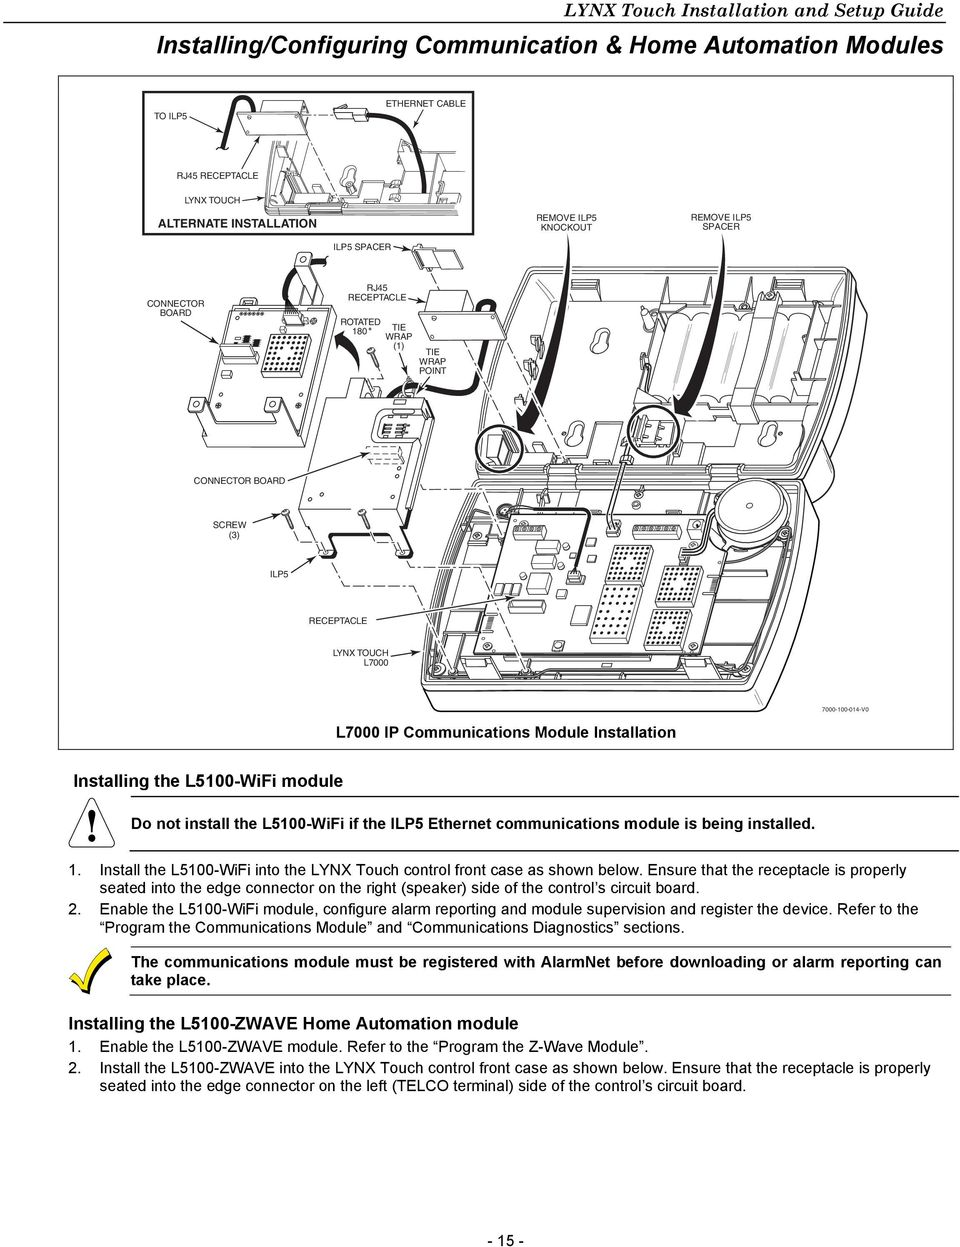 Lynx Touch L5200 L7000 Series Security Systems Pdf Automate Car Alarm Wiring Diagram L5100 Wifi Module Do Not Install The If Ilp5 Ethernet Communications